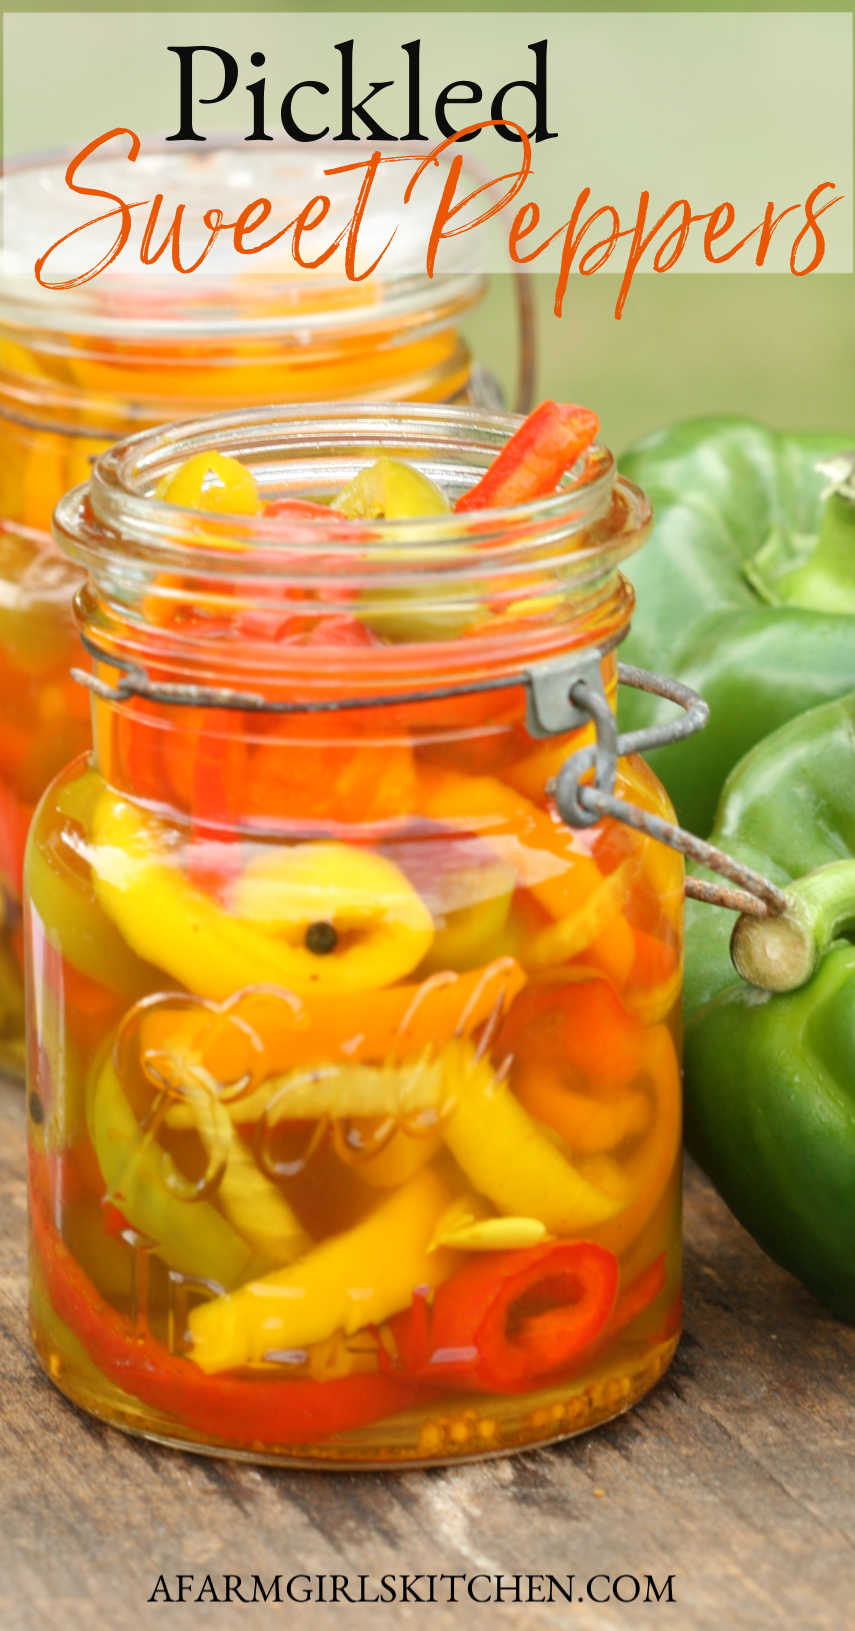 Learn How To Pickled Sweet Peppers Simple Ingredients Including Slices Of Bell Peppers Onions Ga In 2020 Stuffed Sweet Peppers Sweet Pepper Recipes Stuffed Peppers